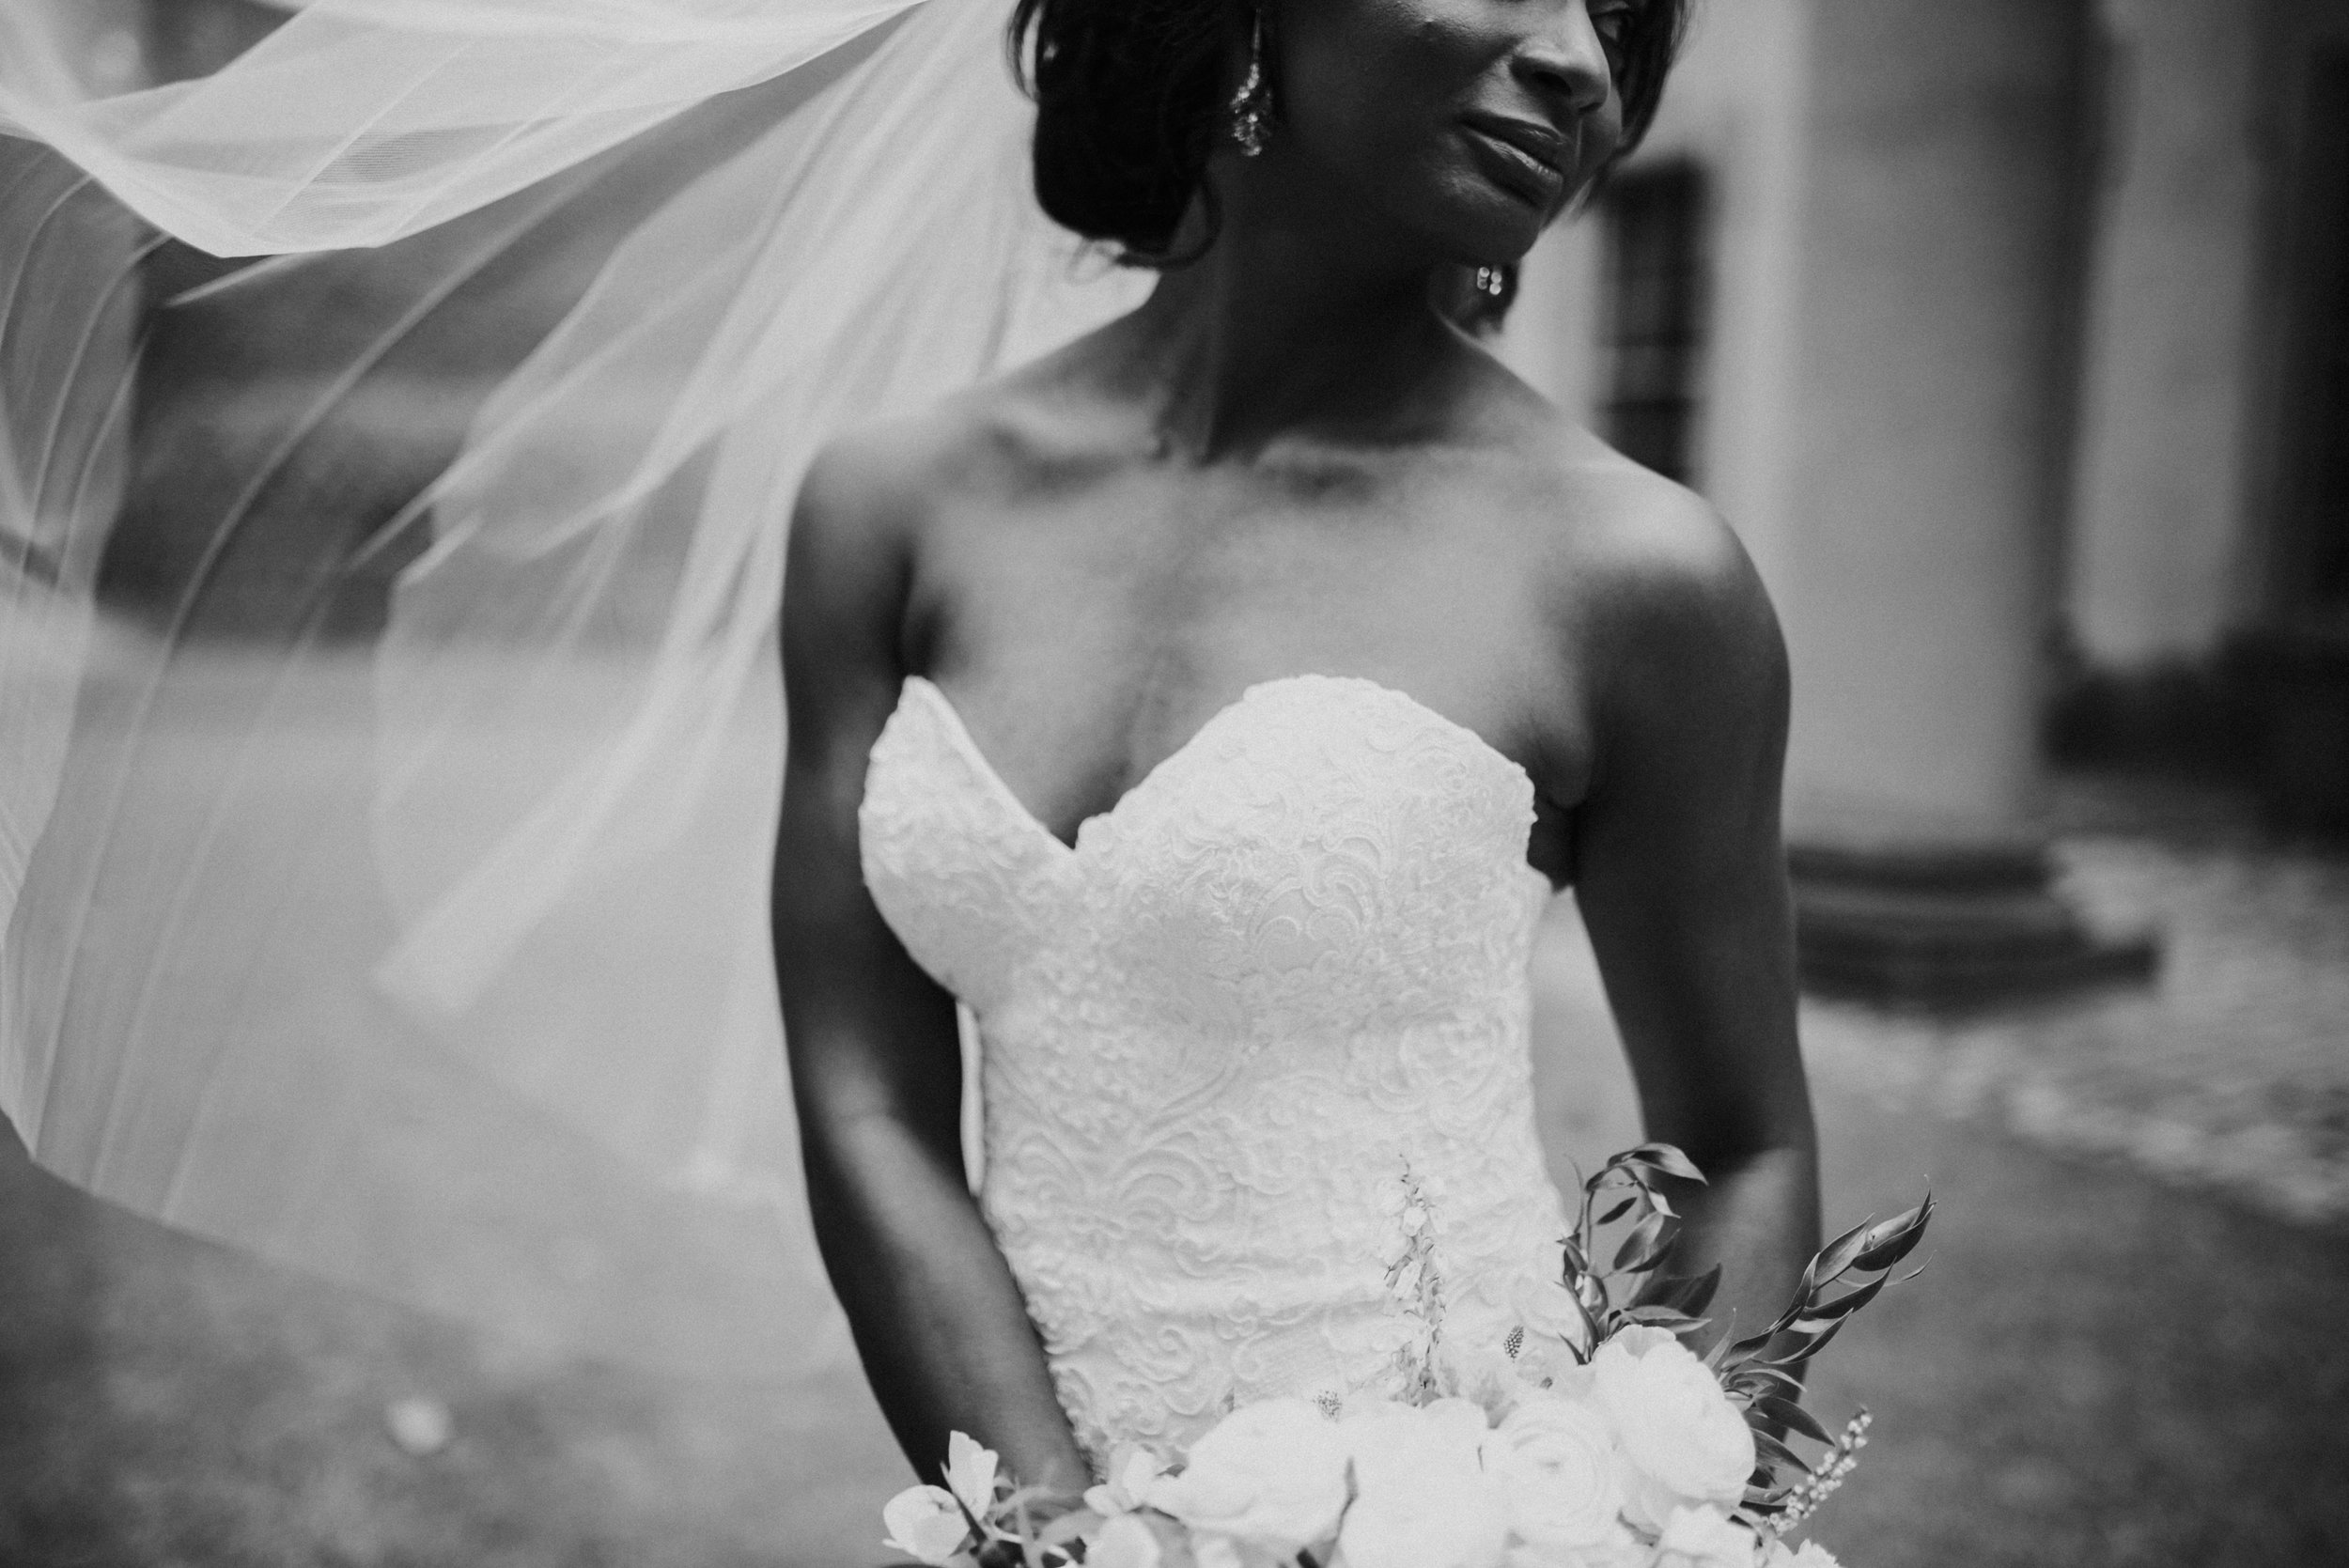 Details of bride in Martina Liana wedding gown and veil